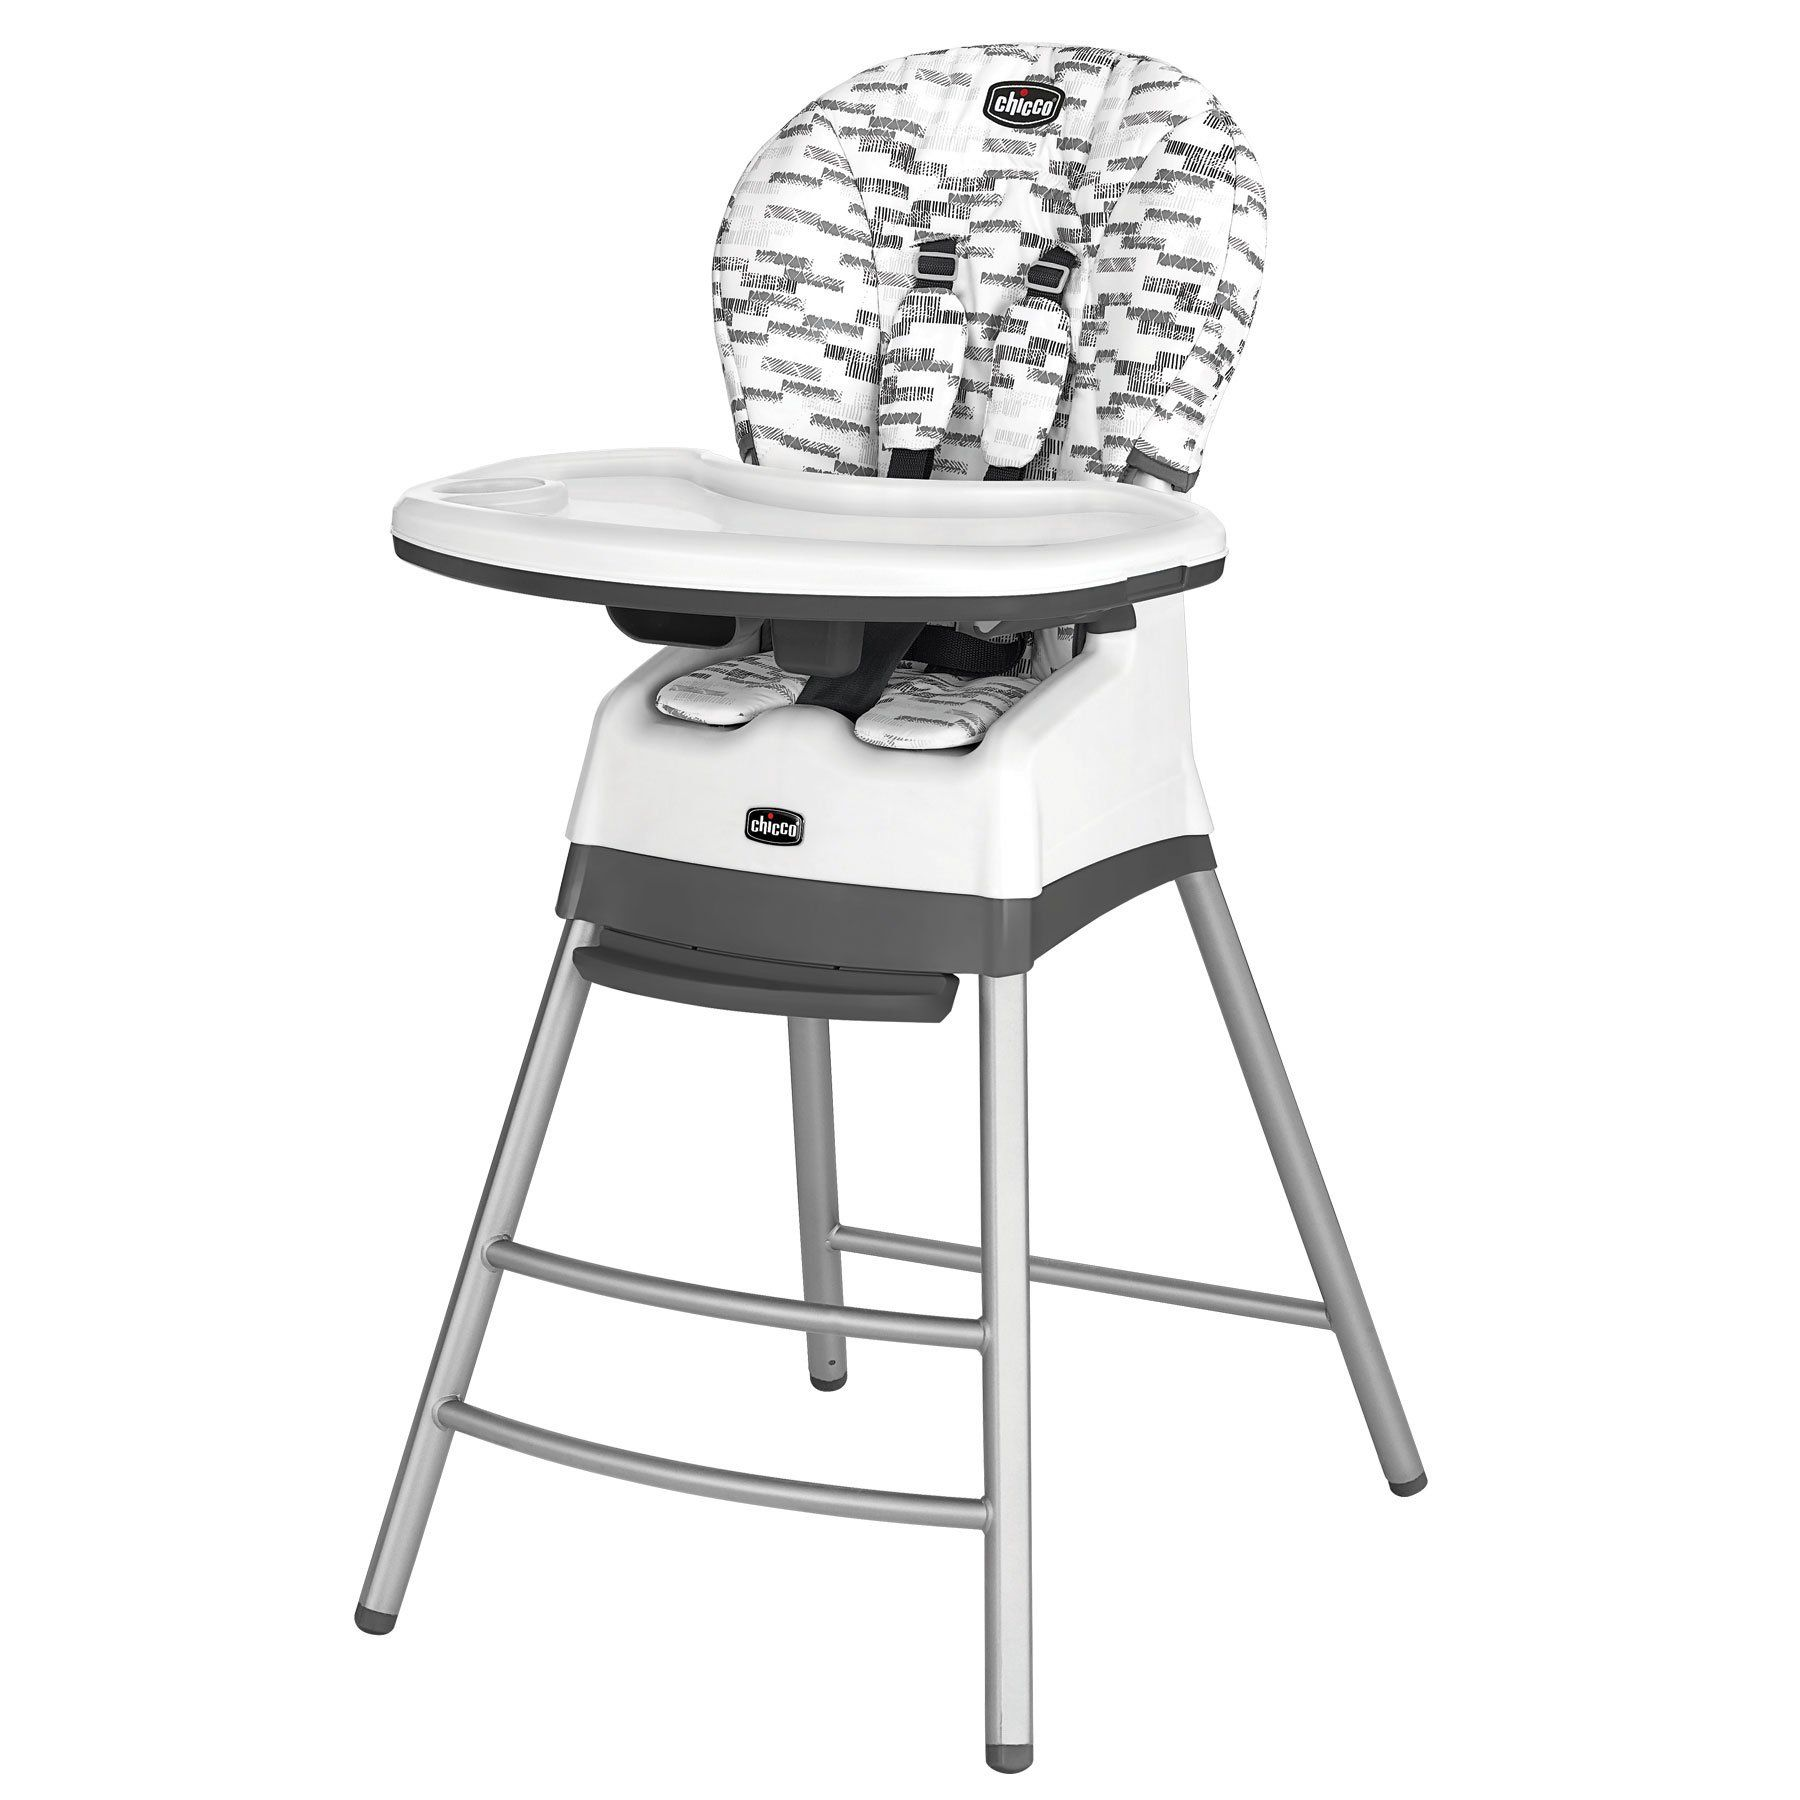 Sensational Stack Highchair Kiwi Chicco Chair Chicco Baby Pabps2019 Chair Design Images Pabps2019Com